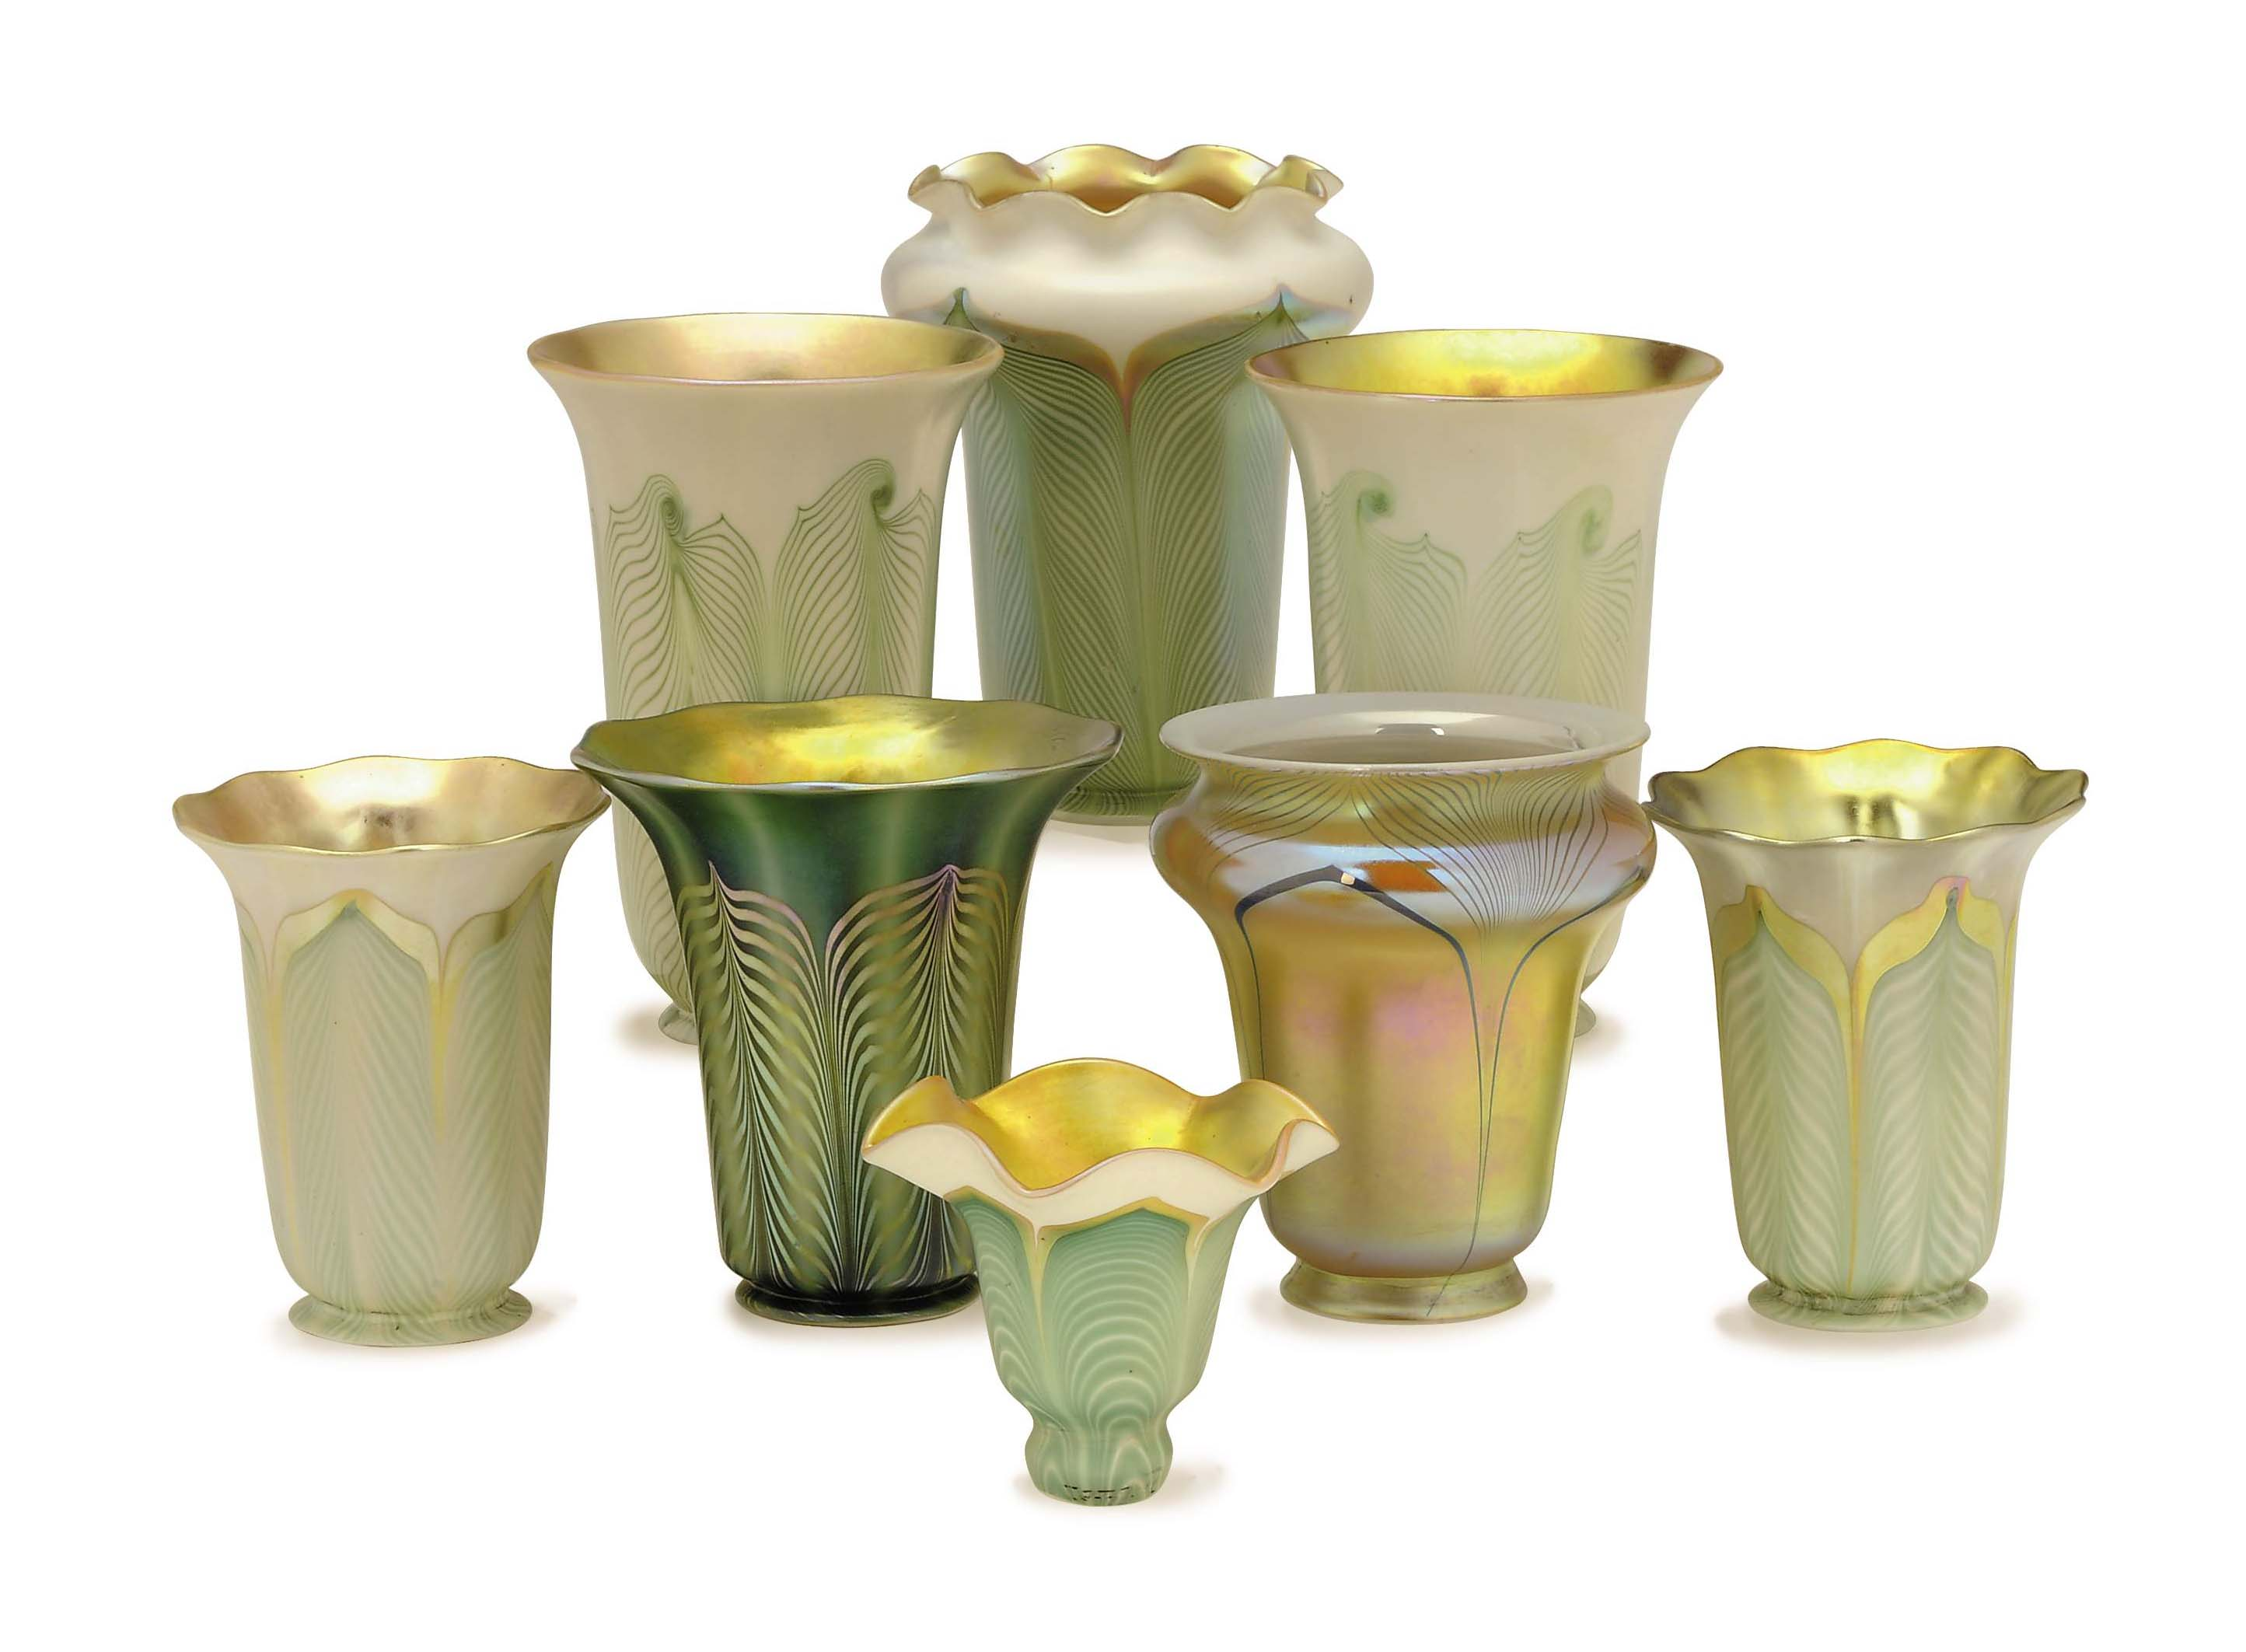 FOUR AMERICAN IRIDESCENT FEATHERED GLASS SHADES, AND FOUR SIMILAR SHADES,